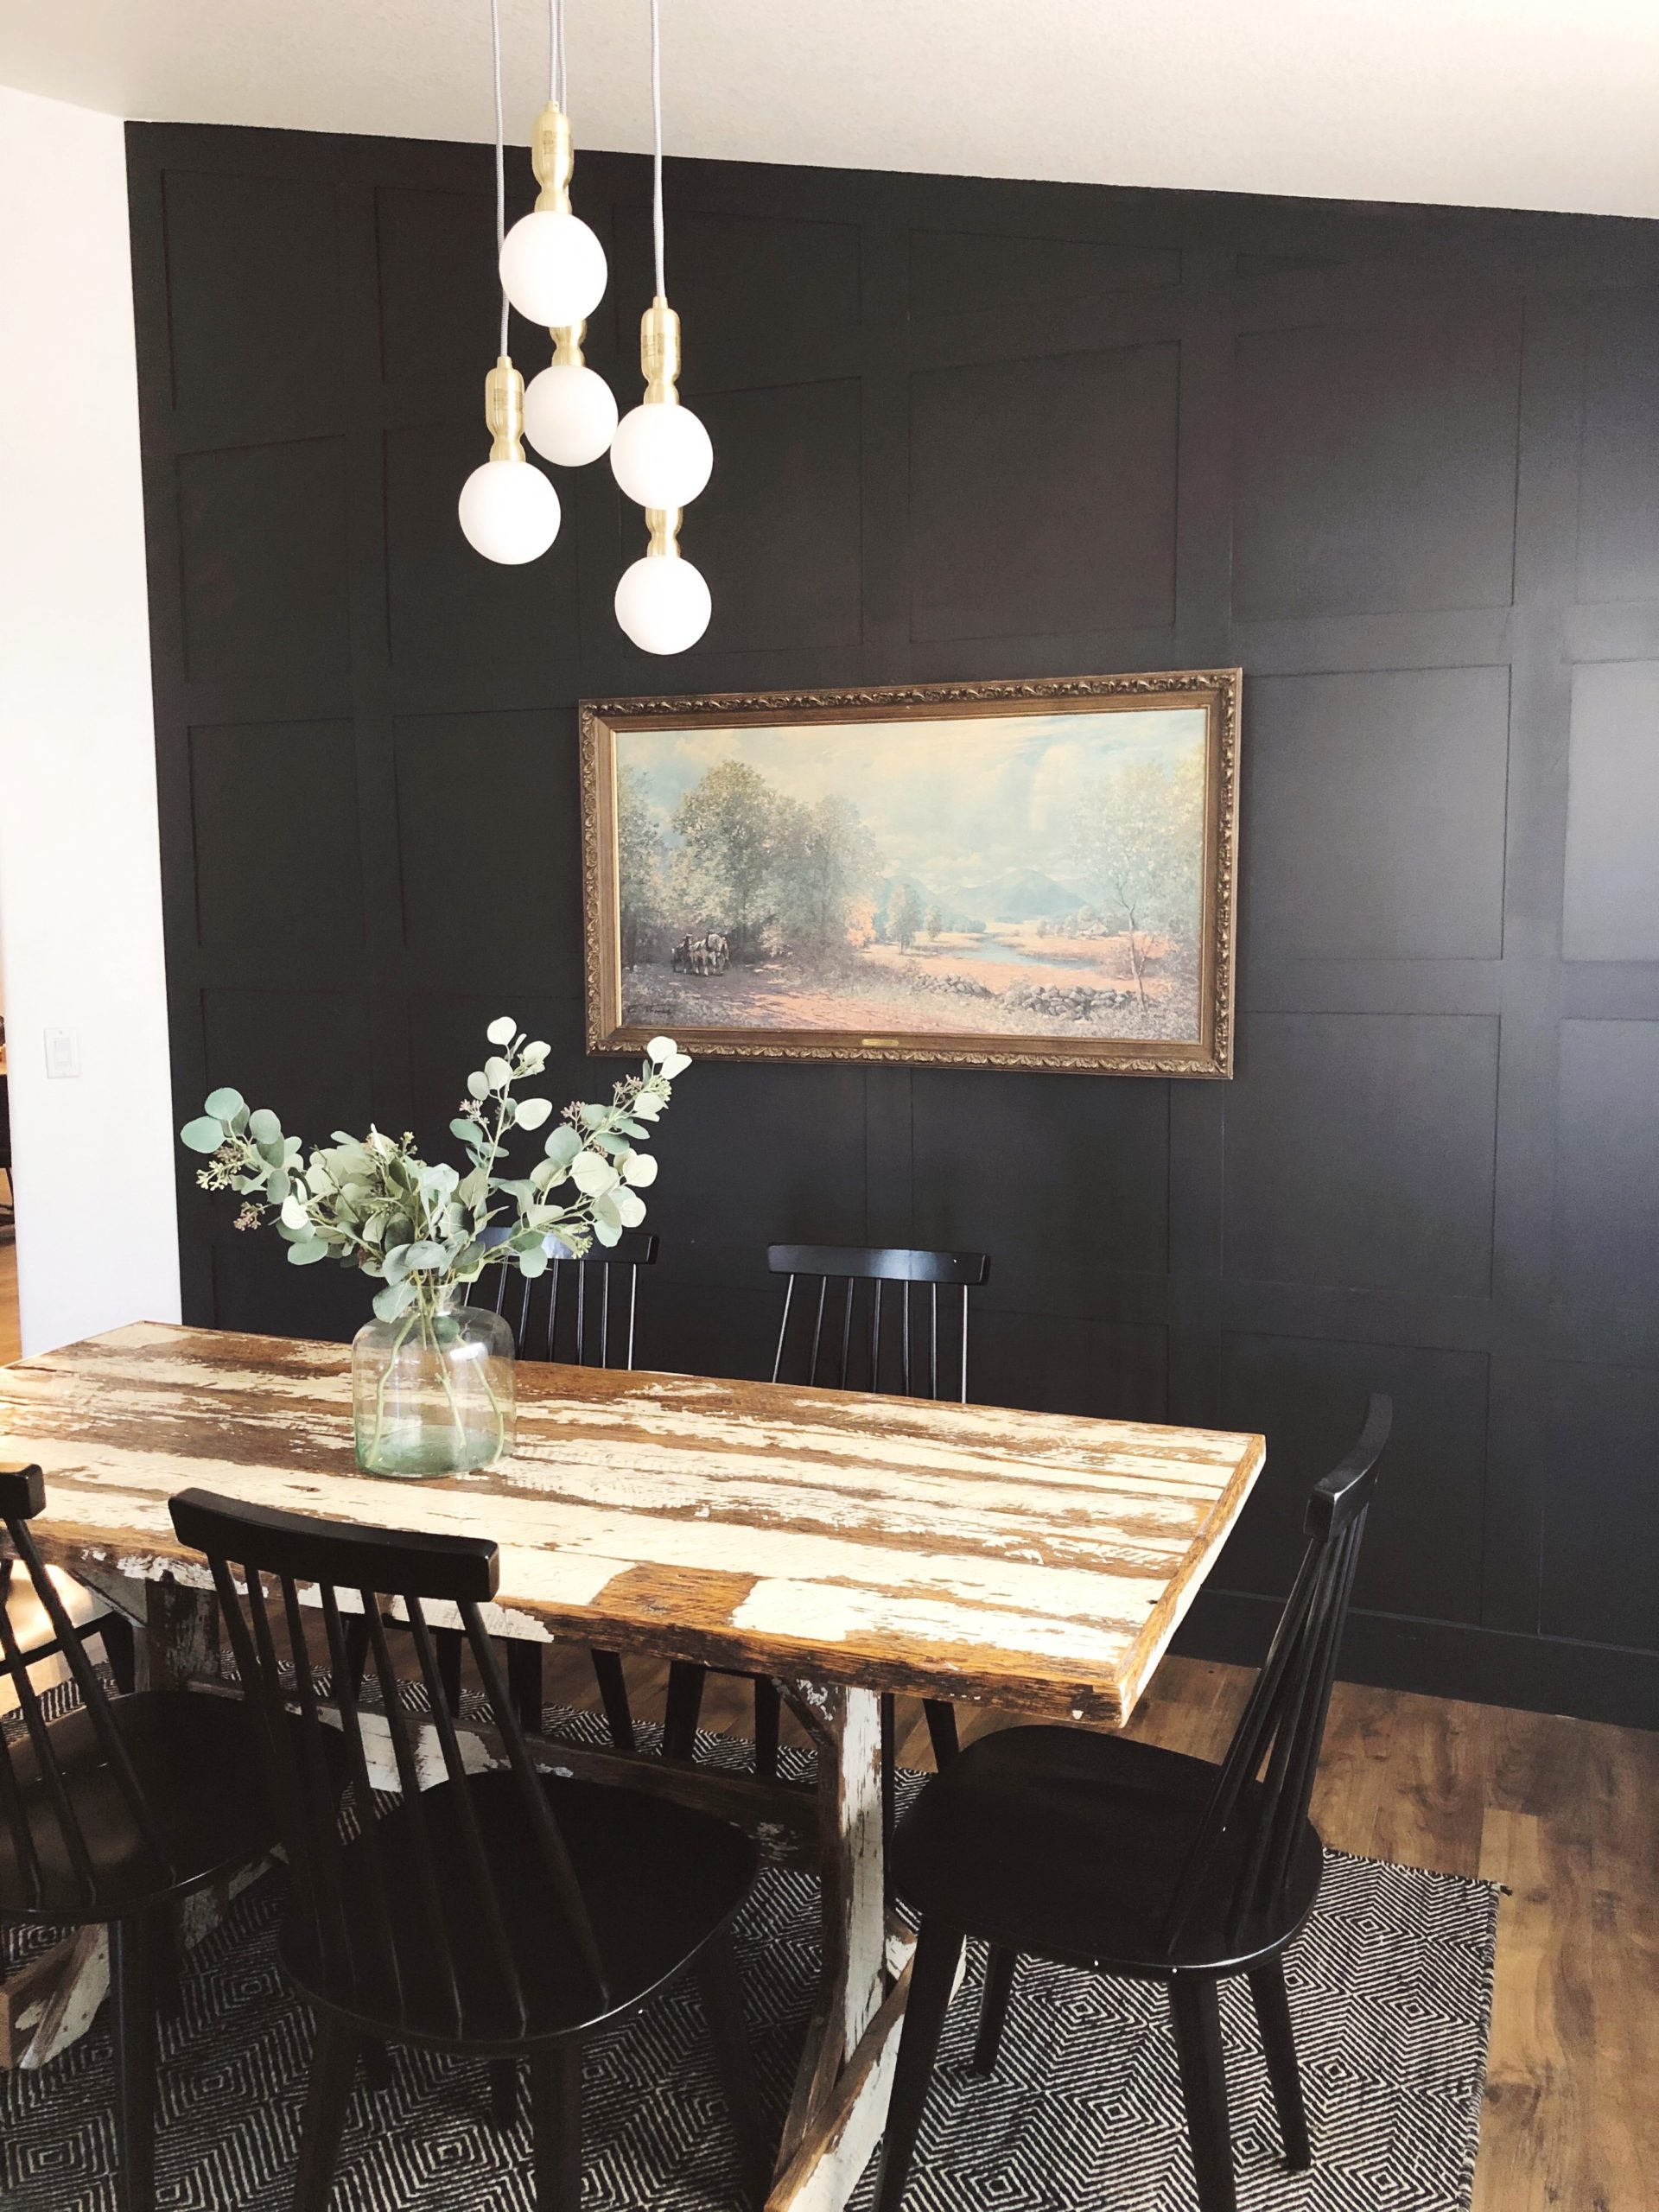 Dining Room Board and Batten Wall - RempelHouse